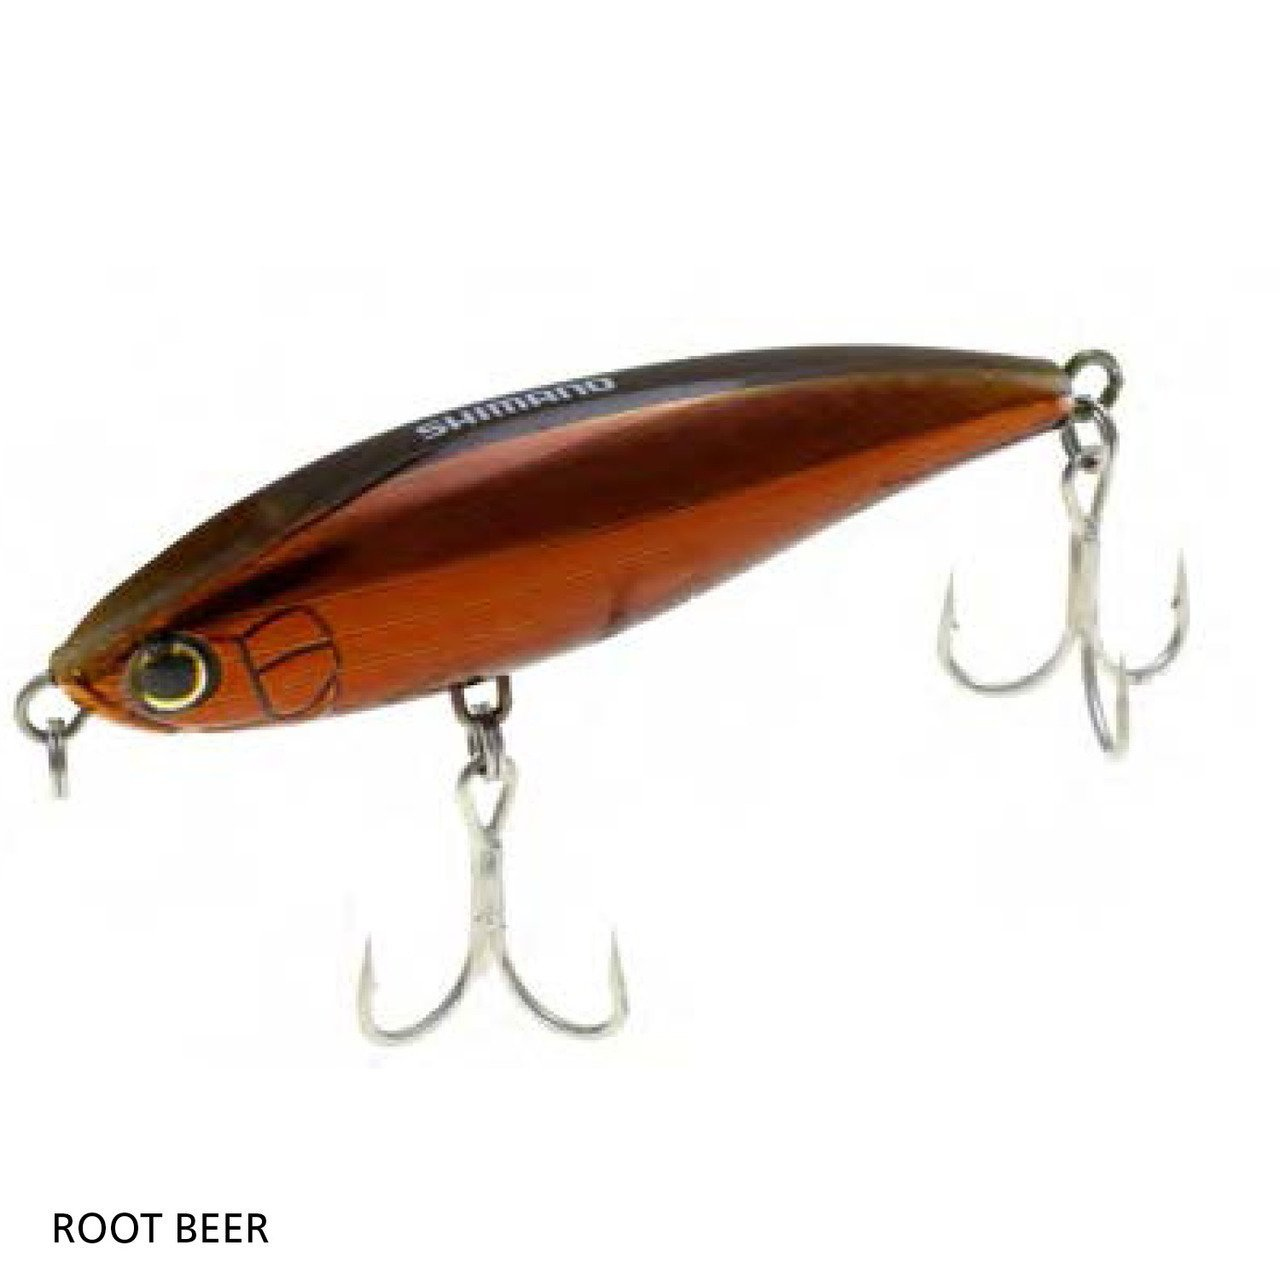 Twich Bait - Shimano - Shimano Coltsniper Twitch Bait 80F Floating Jig - The Fishermans Hut